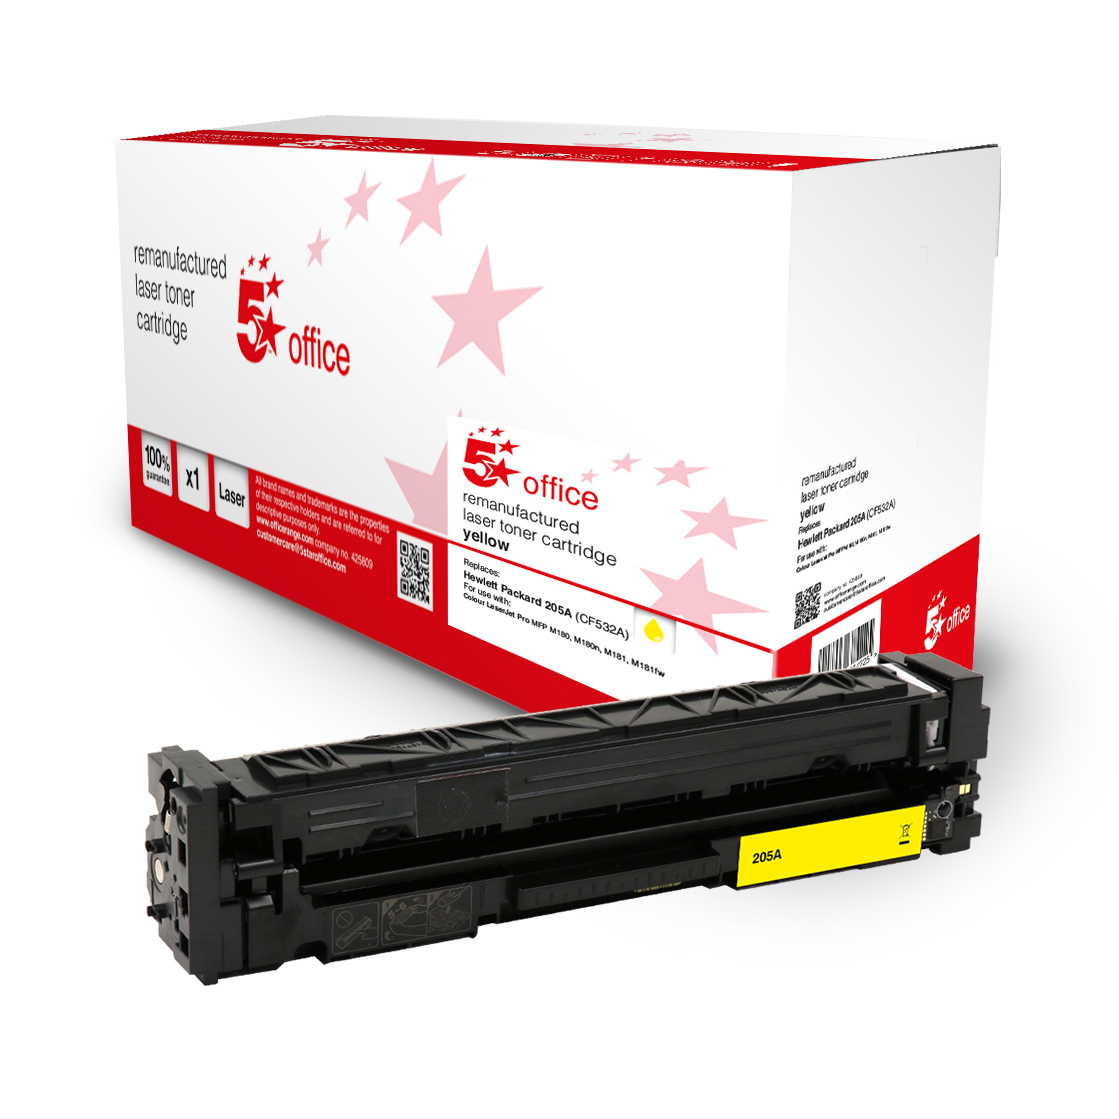 5 Star Office Remanufactured Toner Cartridge Page Life Yellow 900pp HP 205A CF532A Alternative